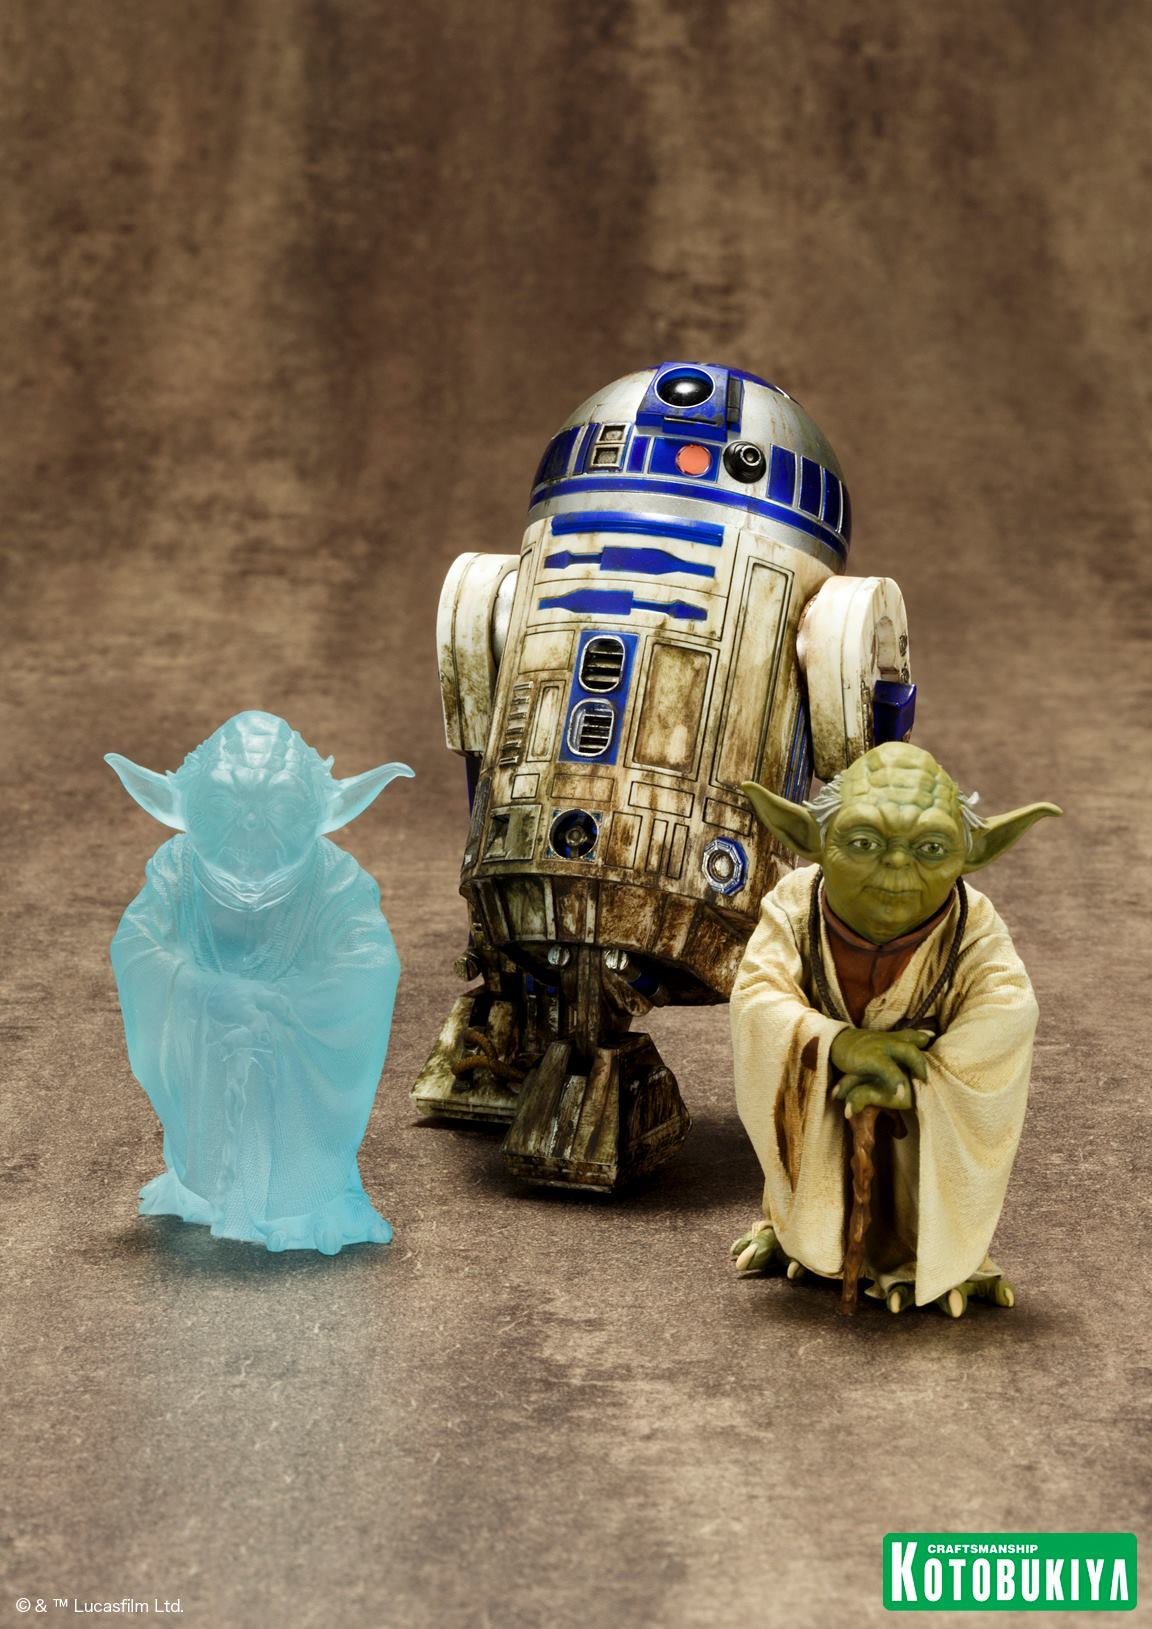 Kotobukiya - Star Wars - Yoda and R2D2 Dagobah ARTFX+ Statue Set - Marvelous Toys - 2